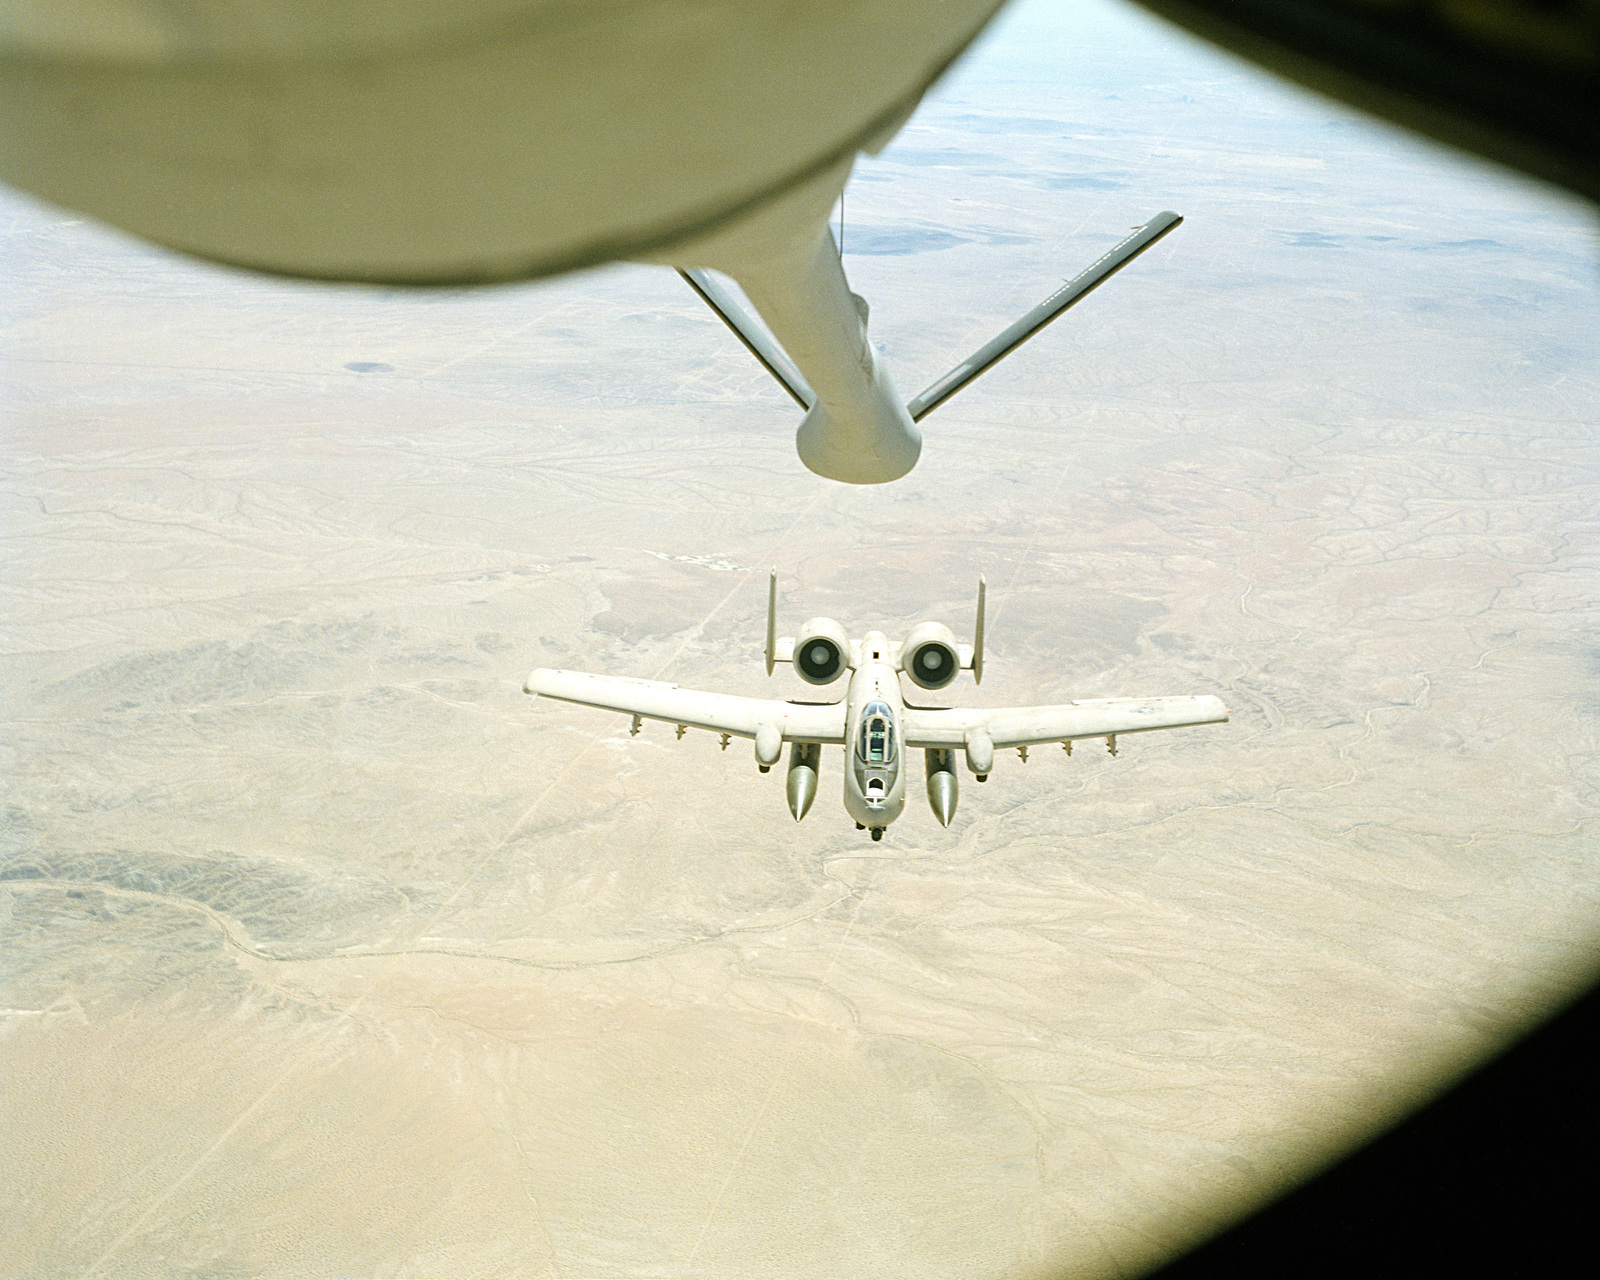 An air-to-air view from a KC-135 Stratotanker aircraft as its boom is lowered to refuel an A-10A Thunderbolt II aircraft, that is coming up to meet the boom